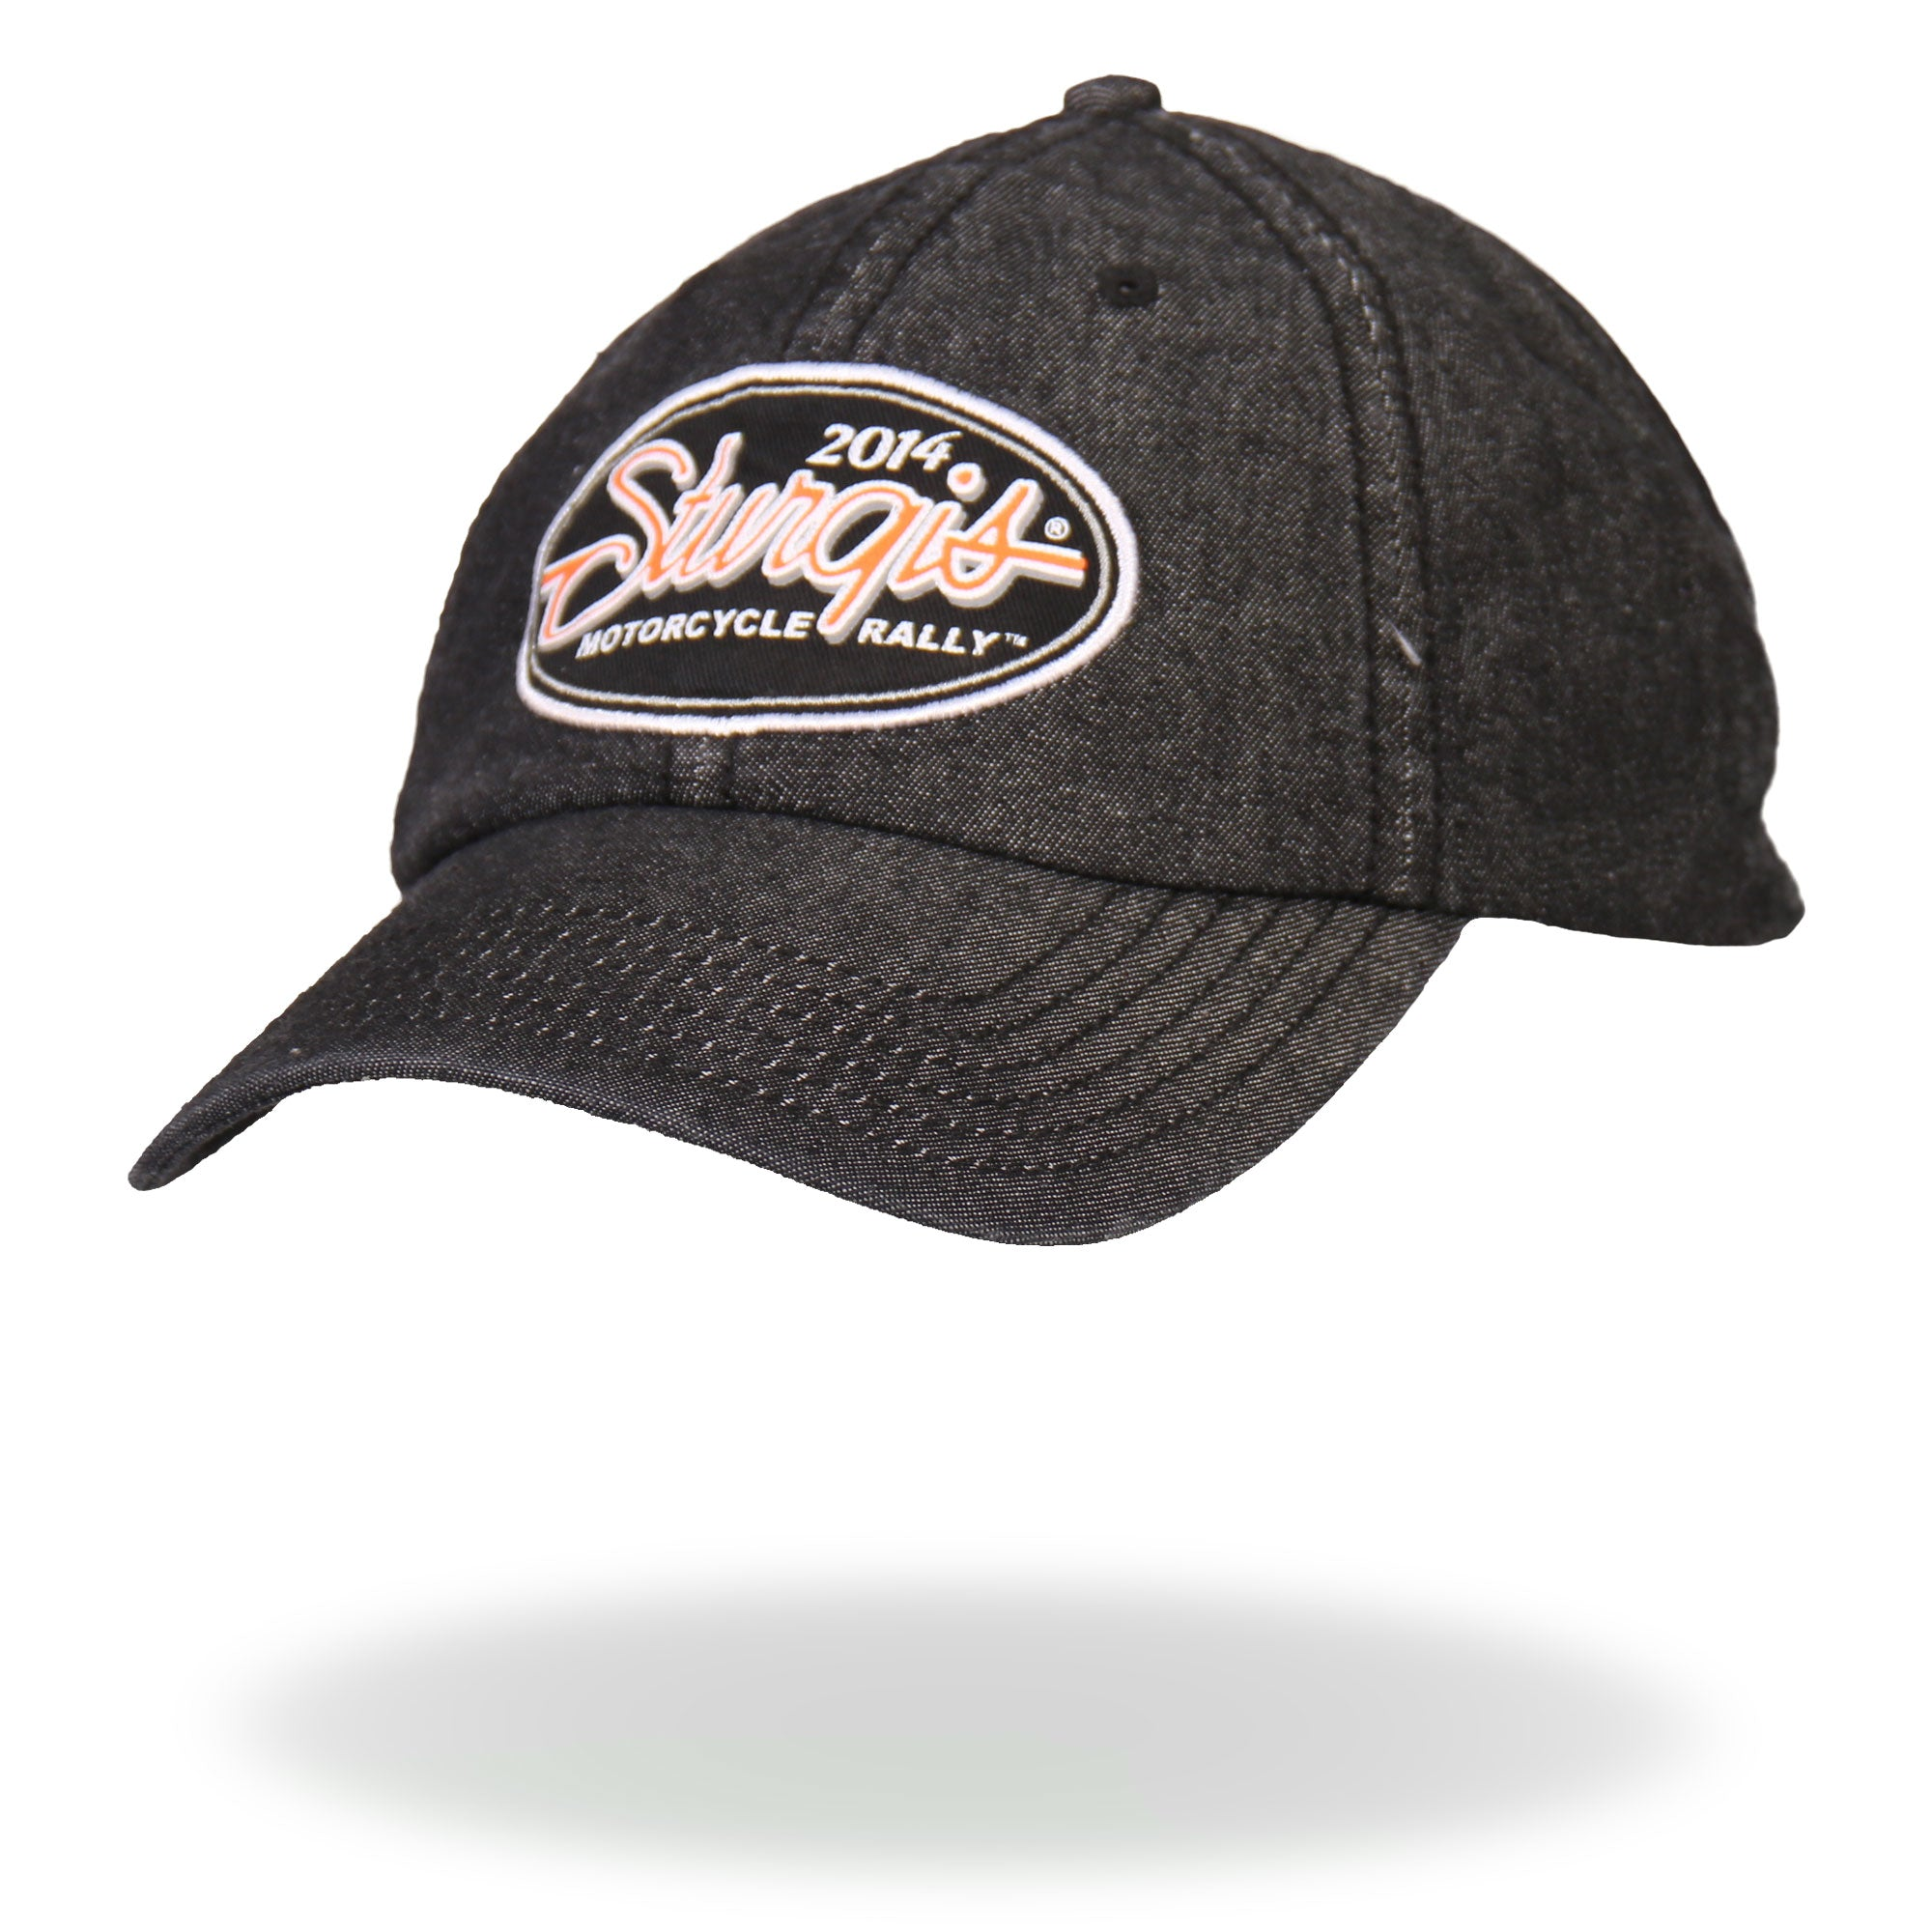 Official 2014 Sturgis Motorcycle Rally Oval Script Ball Cap